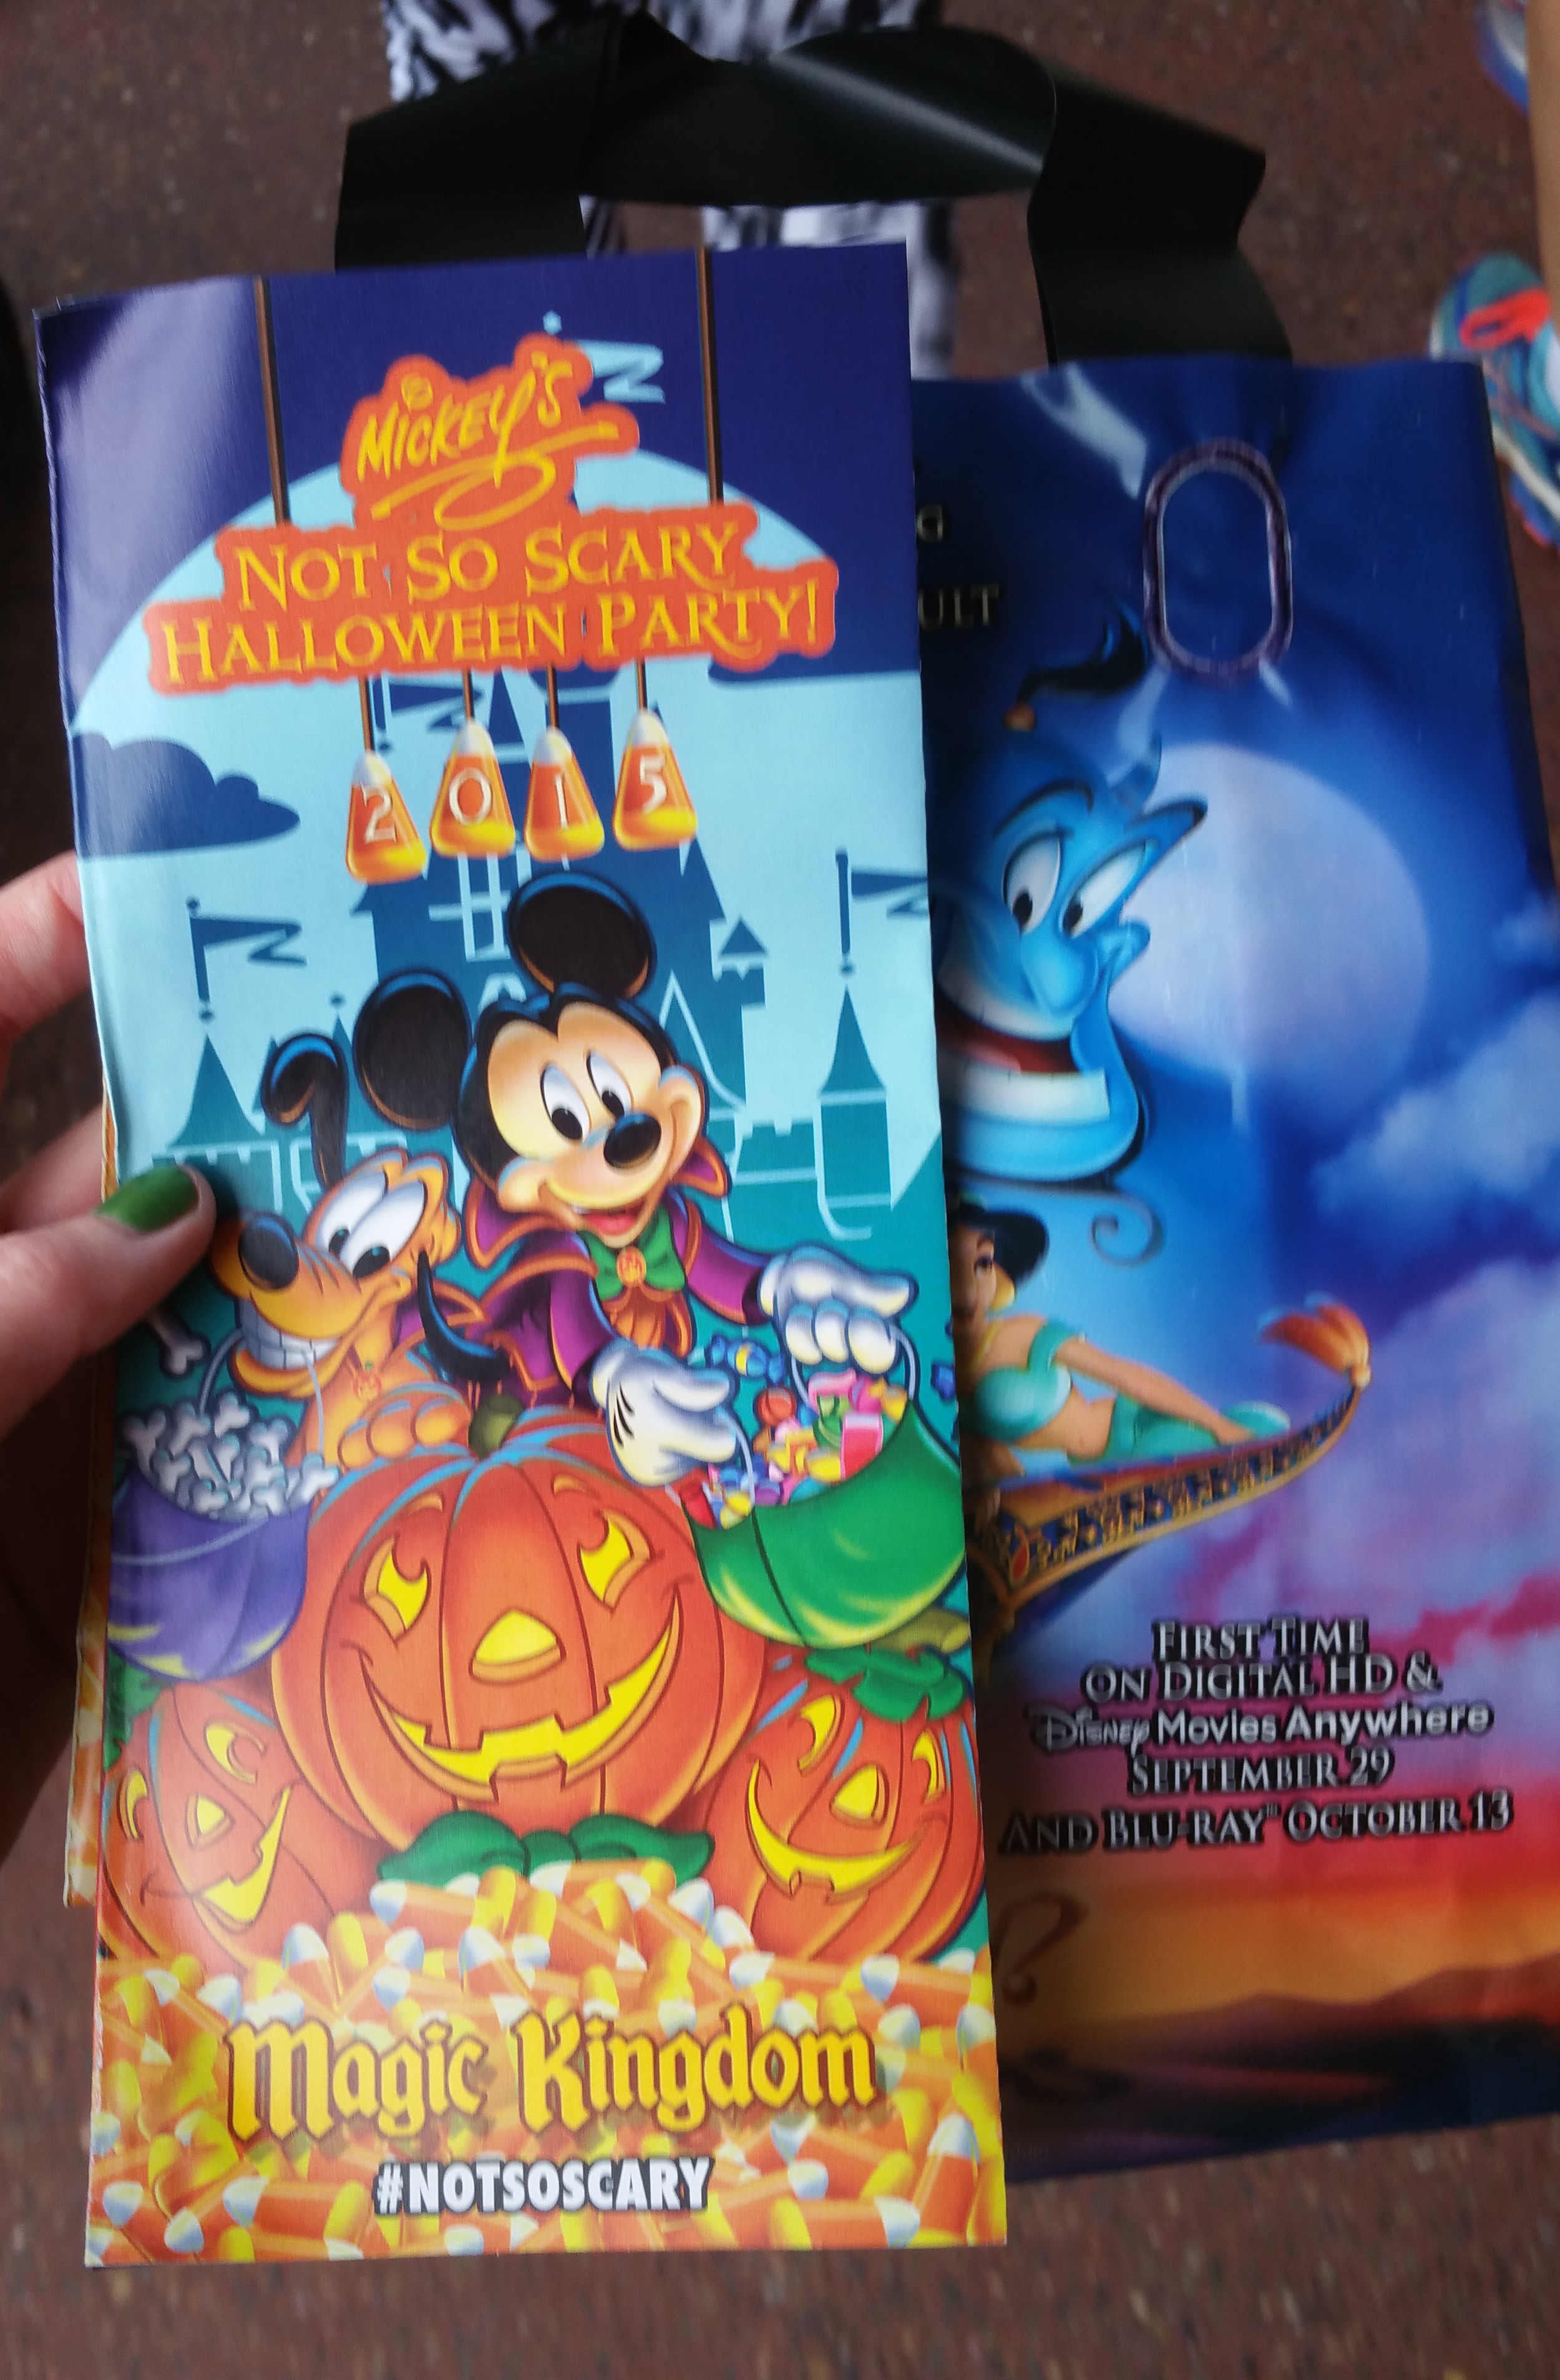 Entering the park we were handed a Mickey's Not-So-Scary Halloween Party park map and also a bag for candy! The park map had the places to collect candy marked,I wasn't with my kids this night so I collected candy to take home to them :)